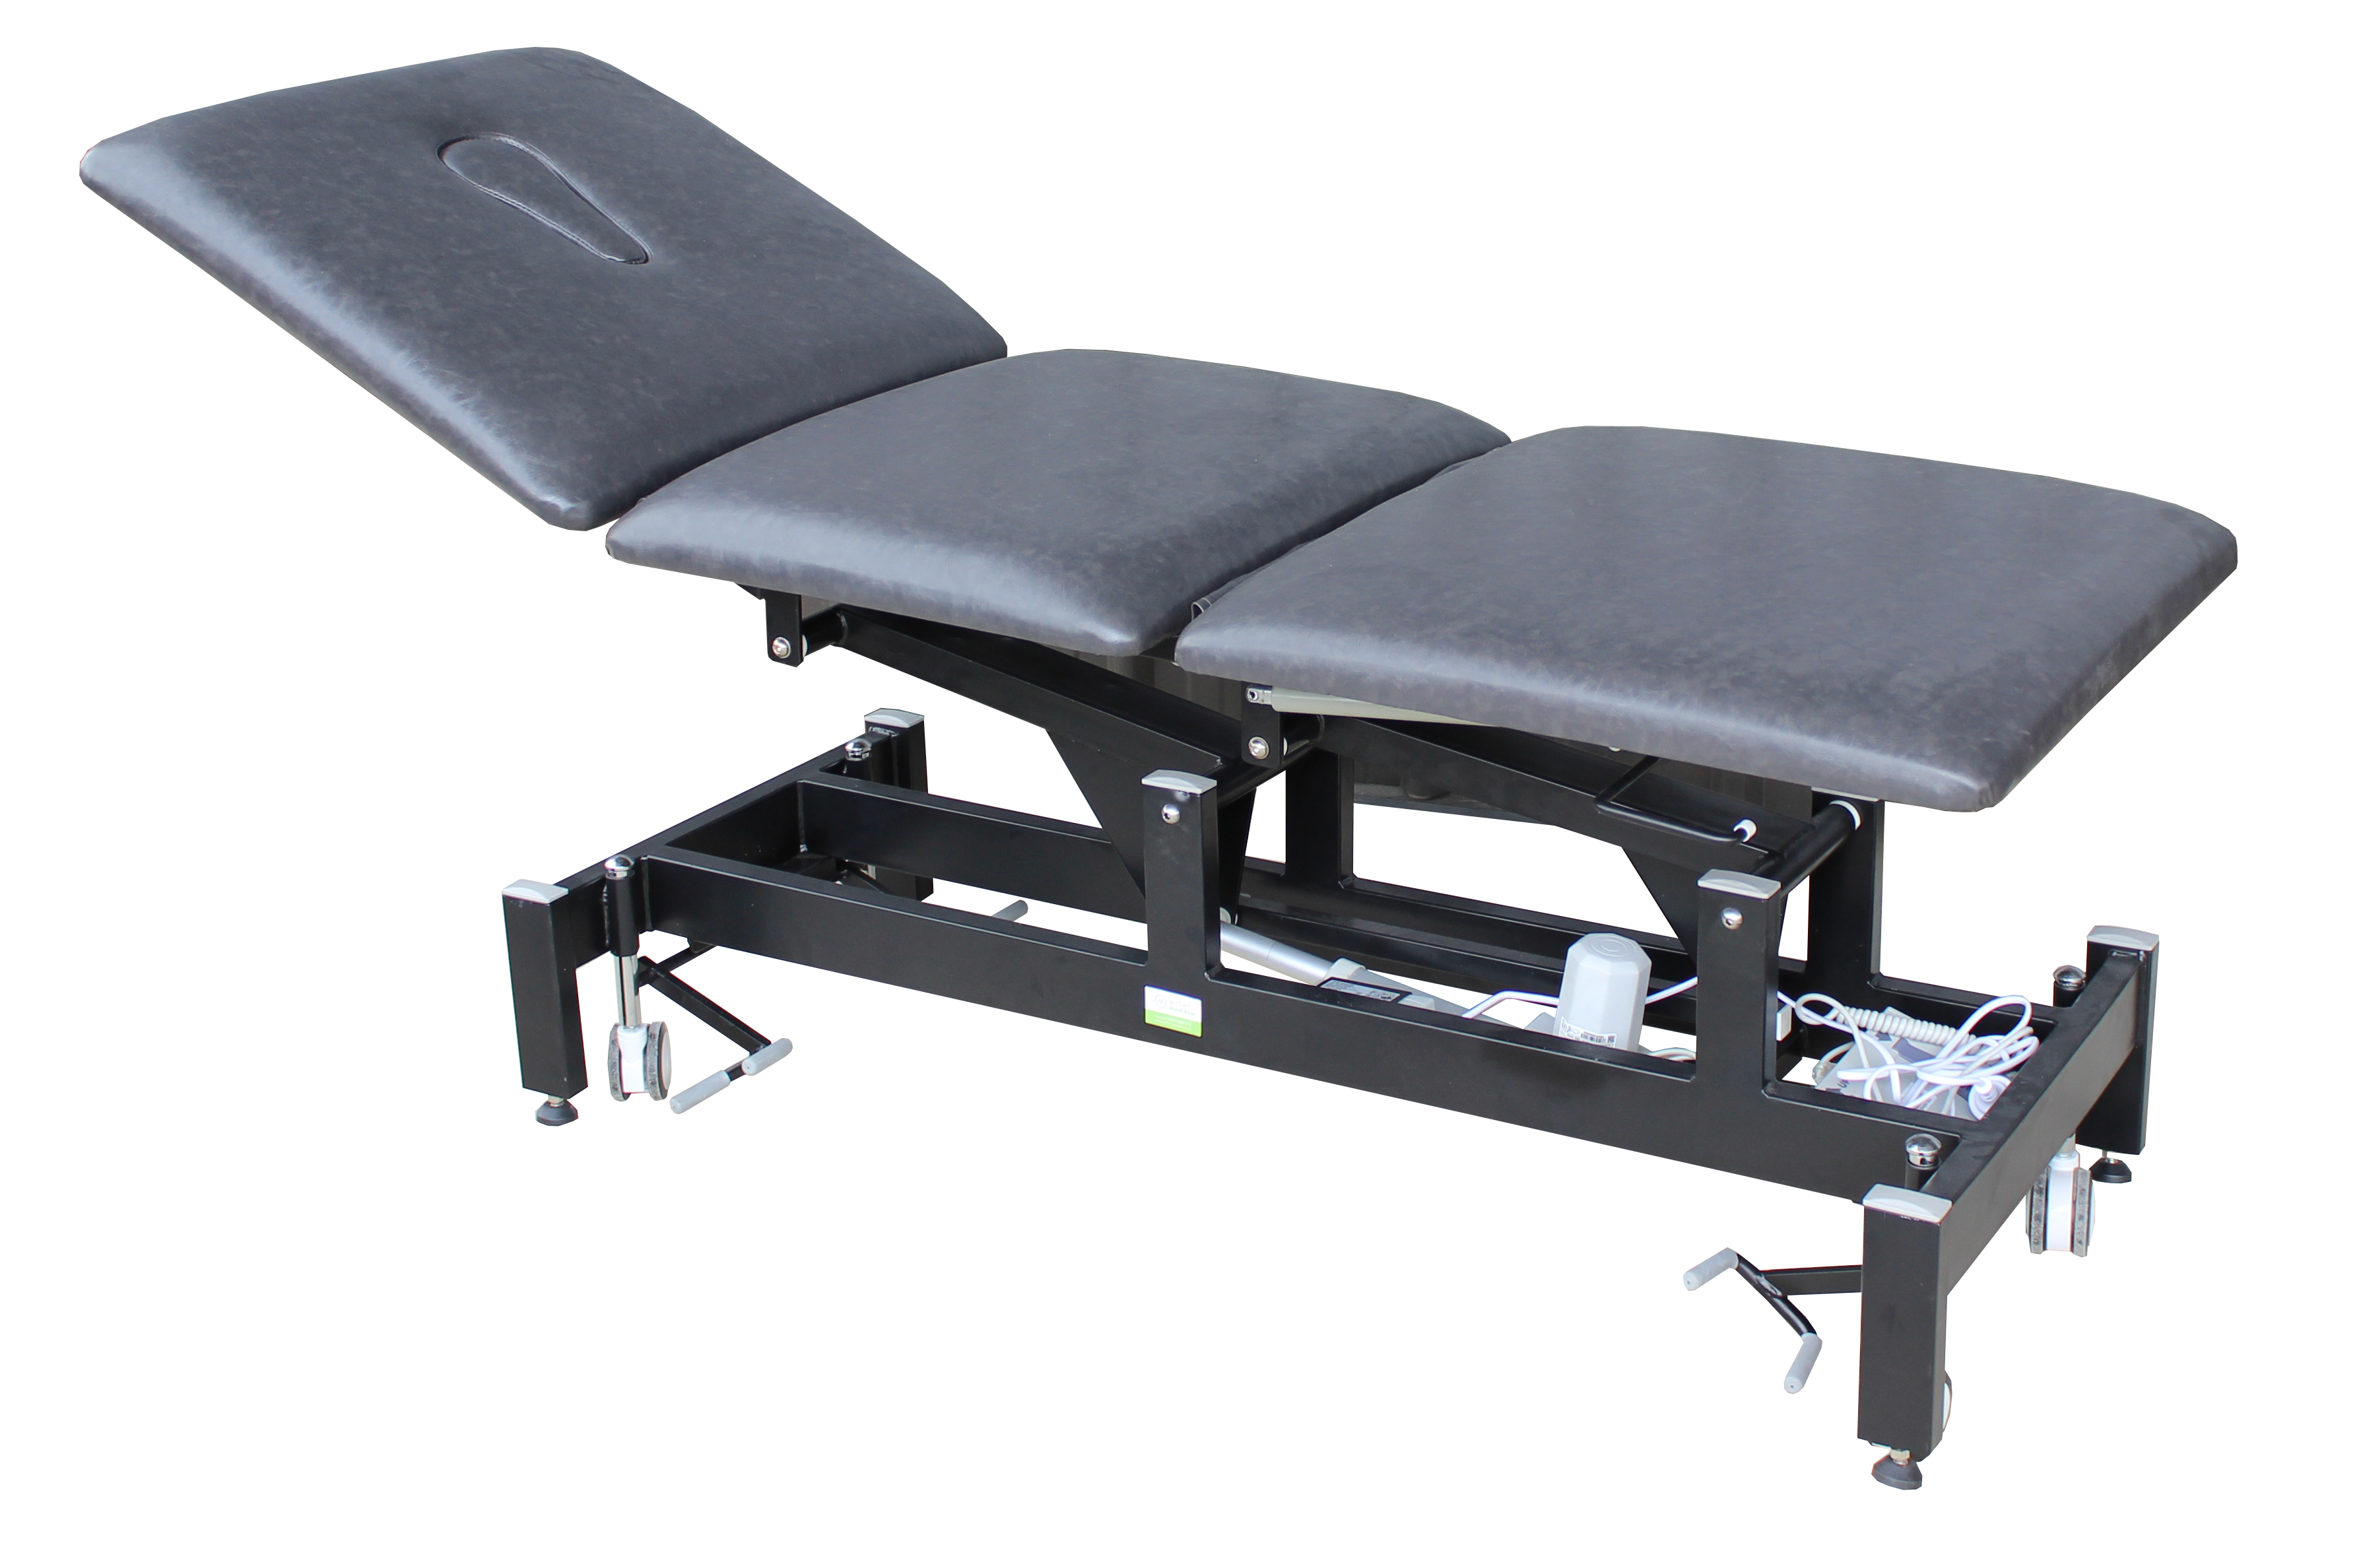 Treatment Tables Medical Medistar 3 Section Plinth, angle view, black